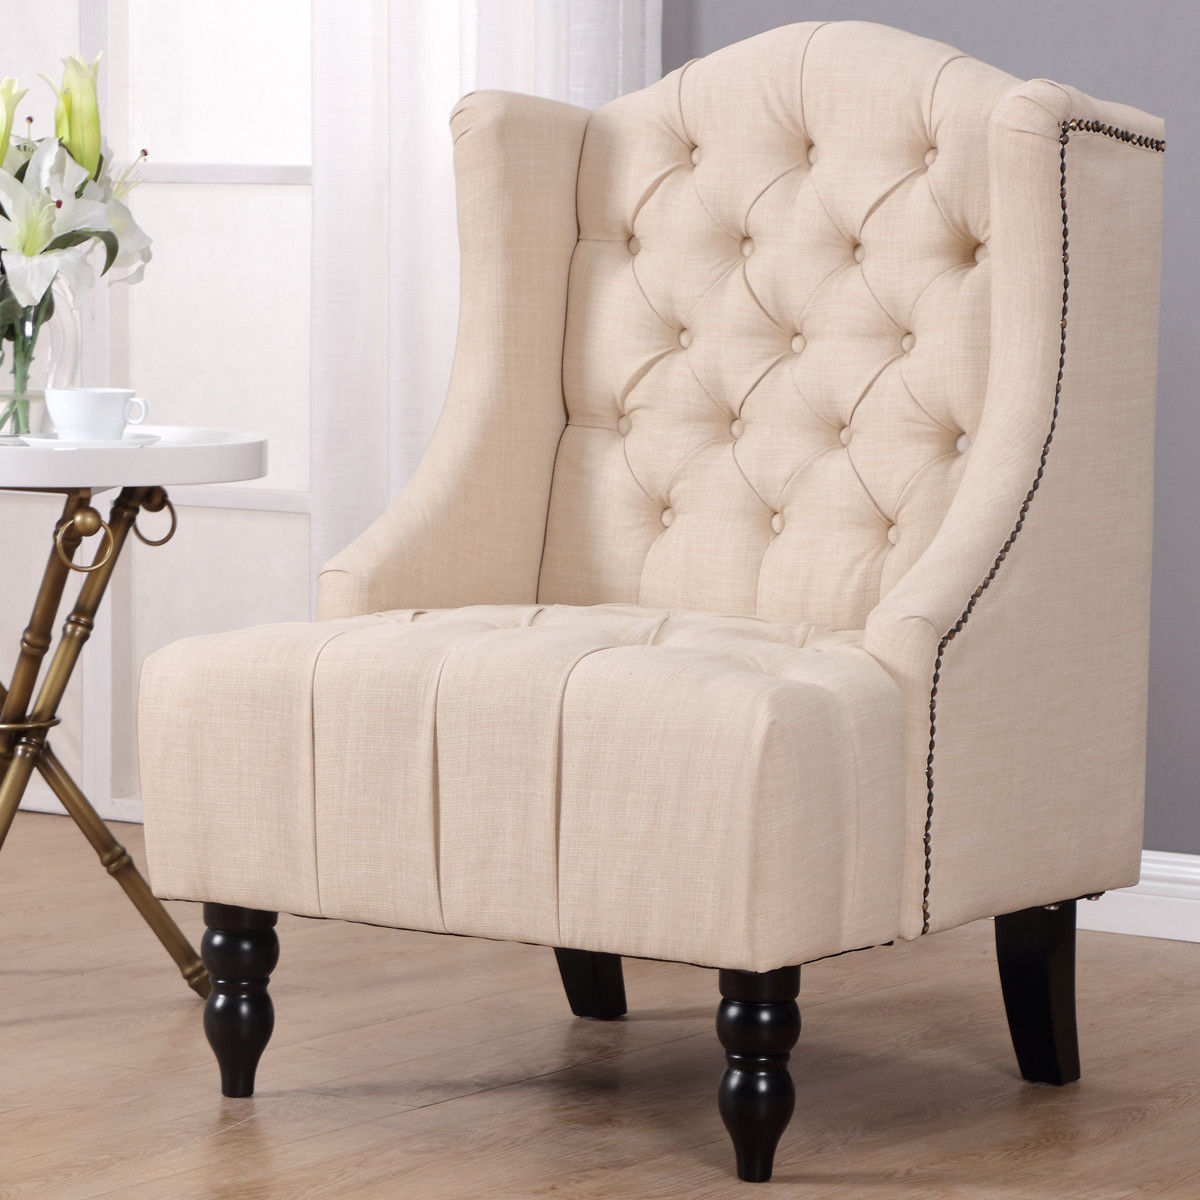 Costway Modern Tall Wingback Tufted Accent Armchair Fabric Vintage Chair Nailhead Beige by Costway